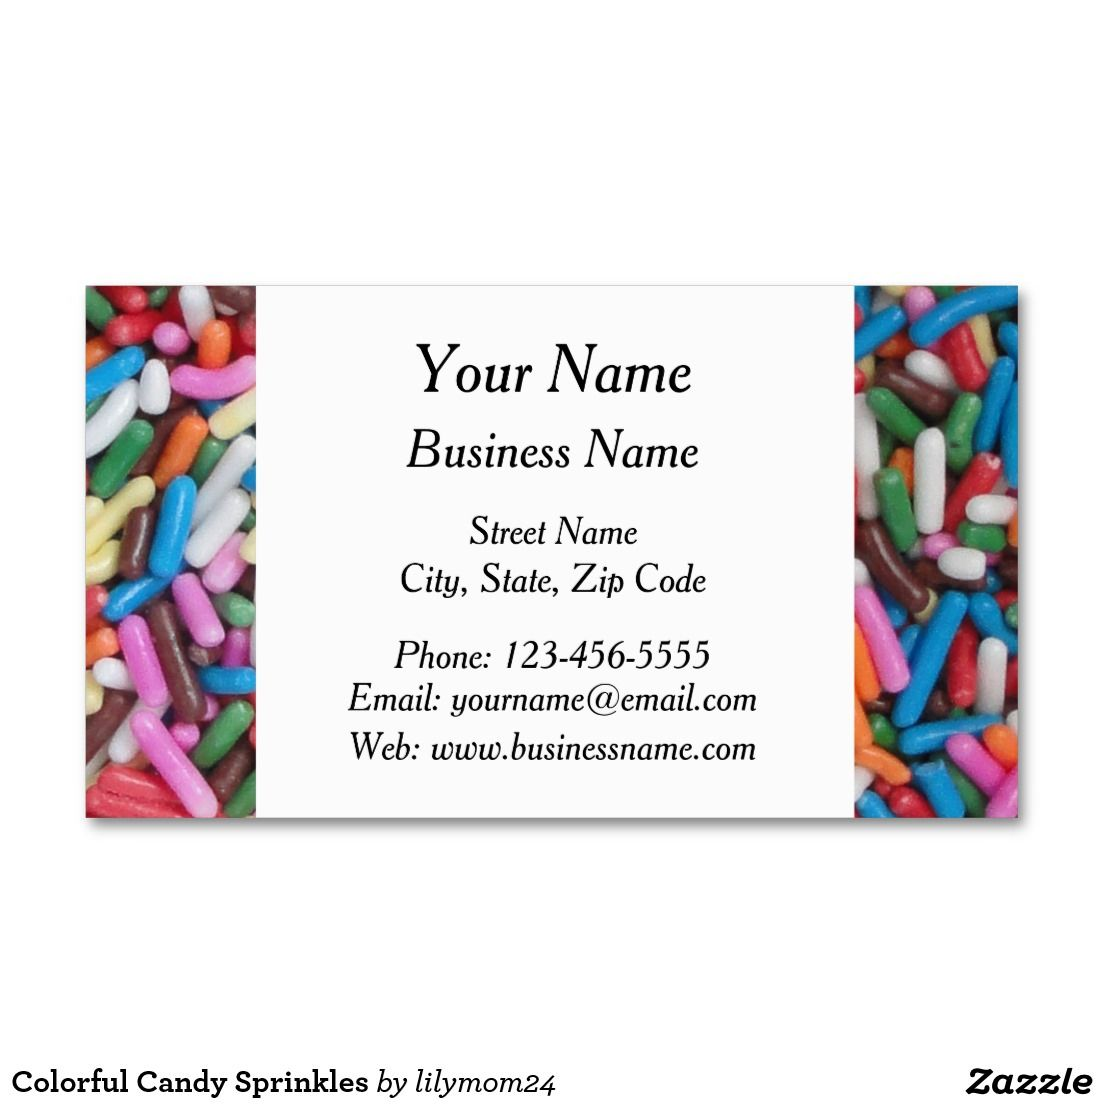 Colorful Candy Sprinkles Business Card | Colorful candy, Business ...